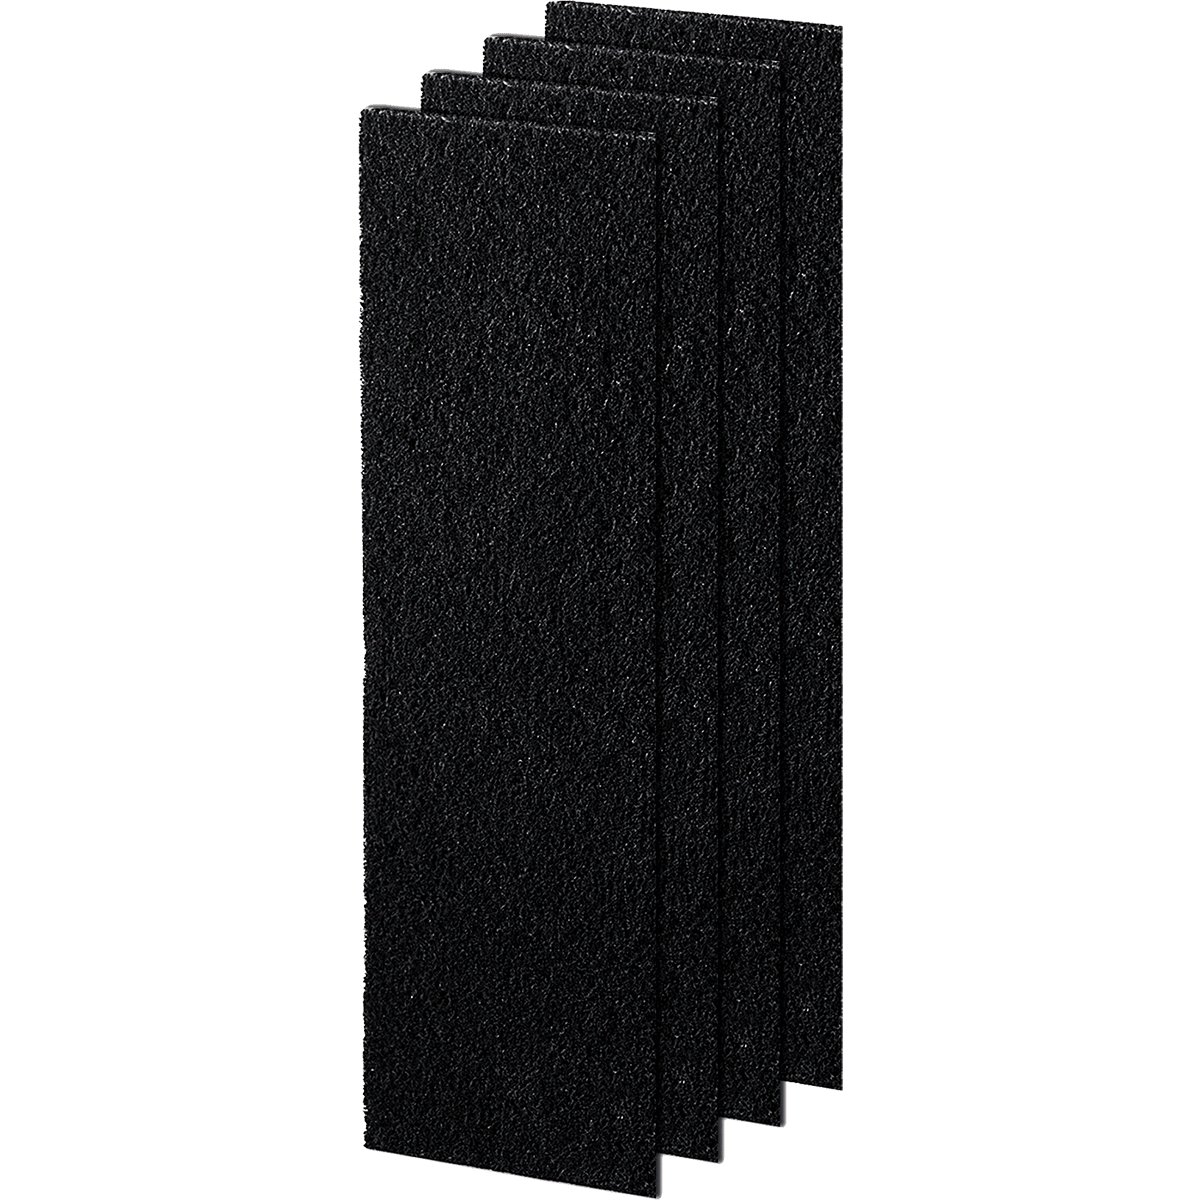 Image of AeraMax Carbon Filters for 90/100/DX5 Air Purifier - 4-Pack